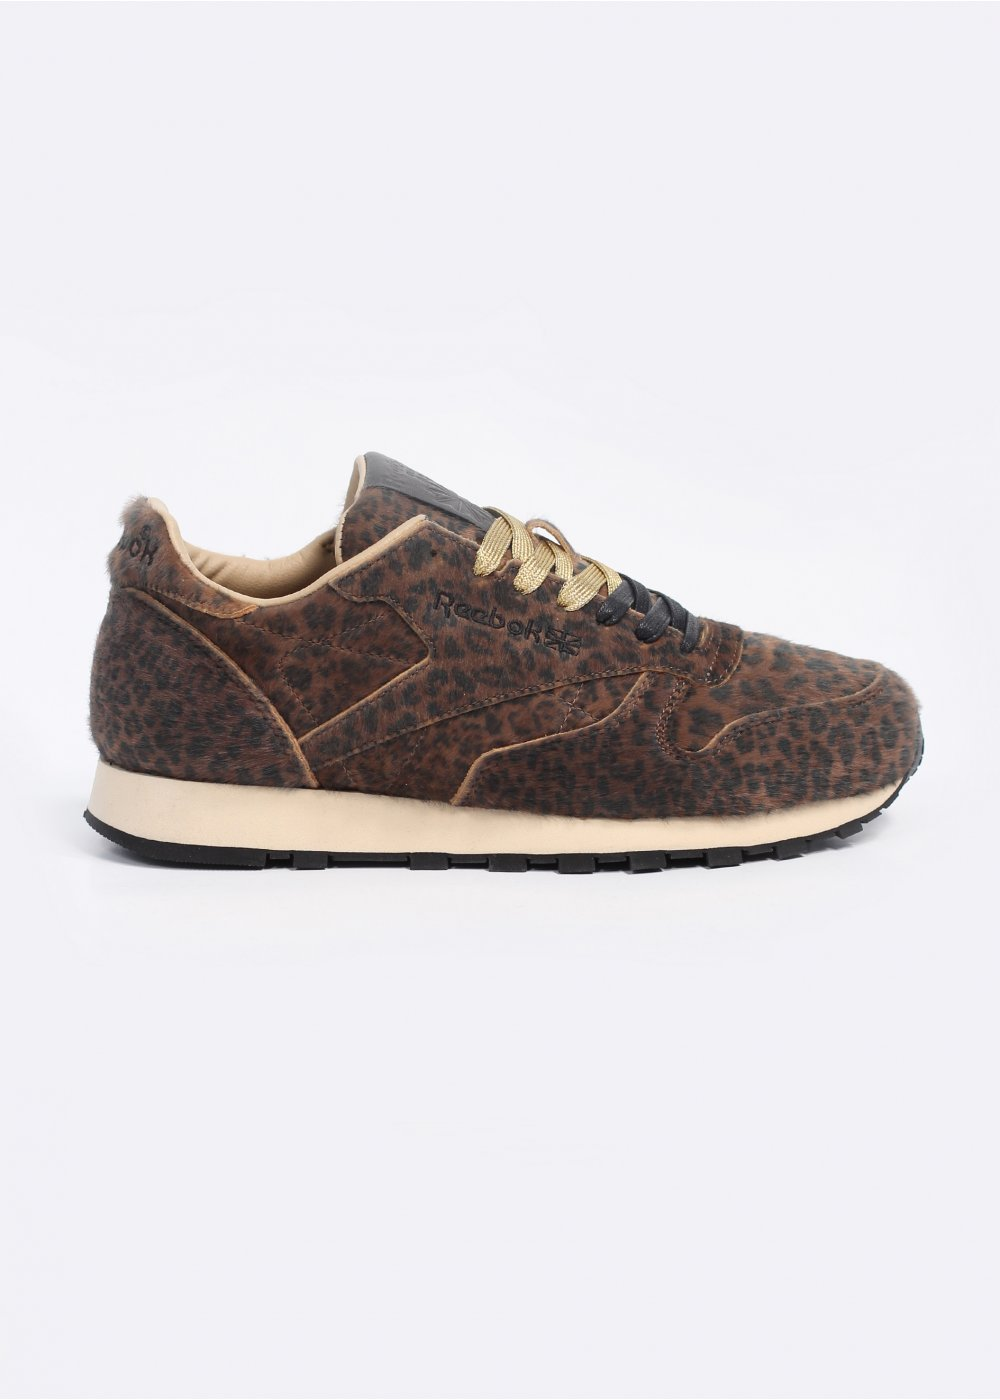 f8b643411a352 x Head Porter Plus Classic Leather Trainers - Vintage Bone   Leopard   Noir  Black